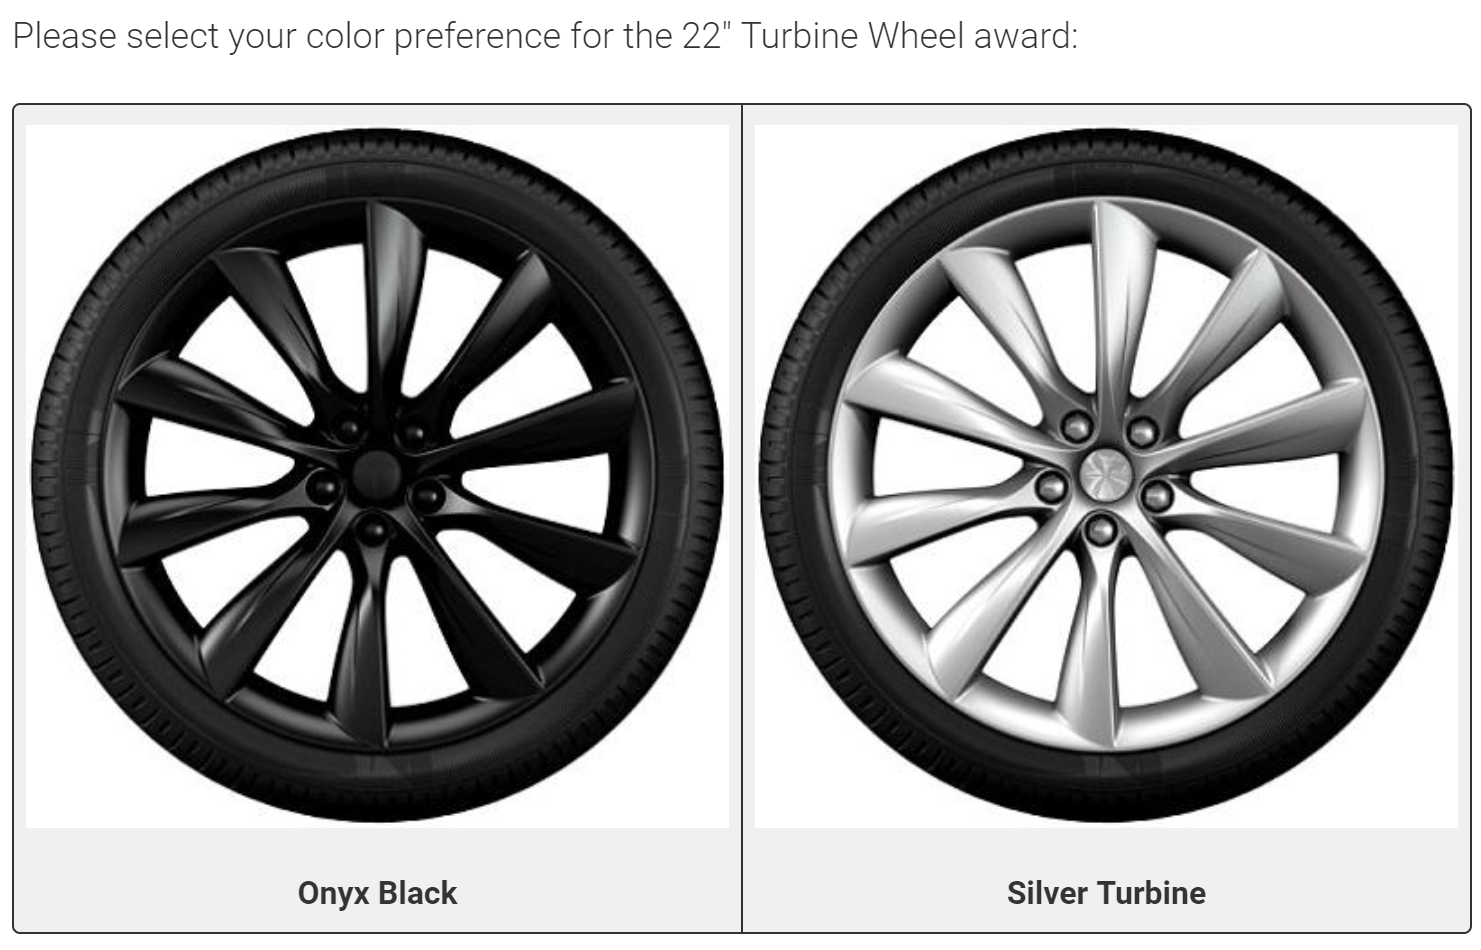 wheel award.PNG